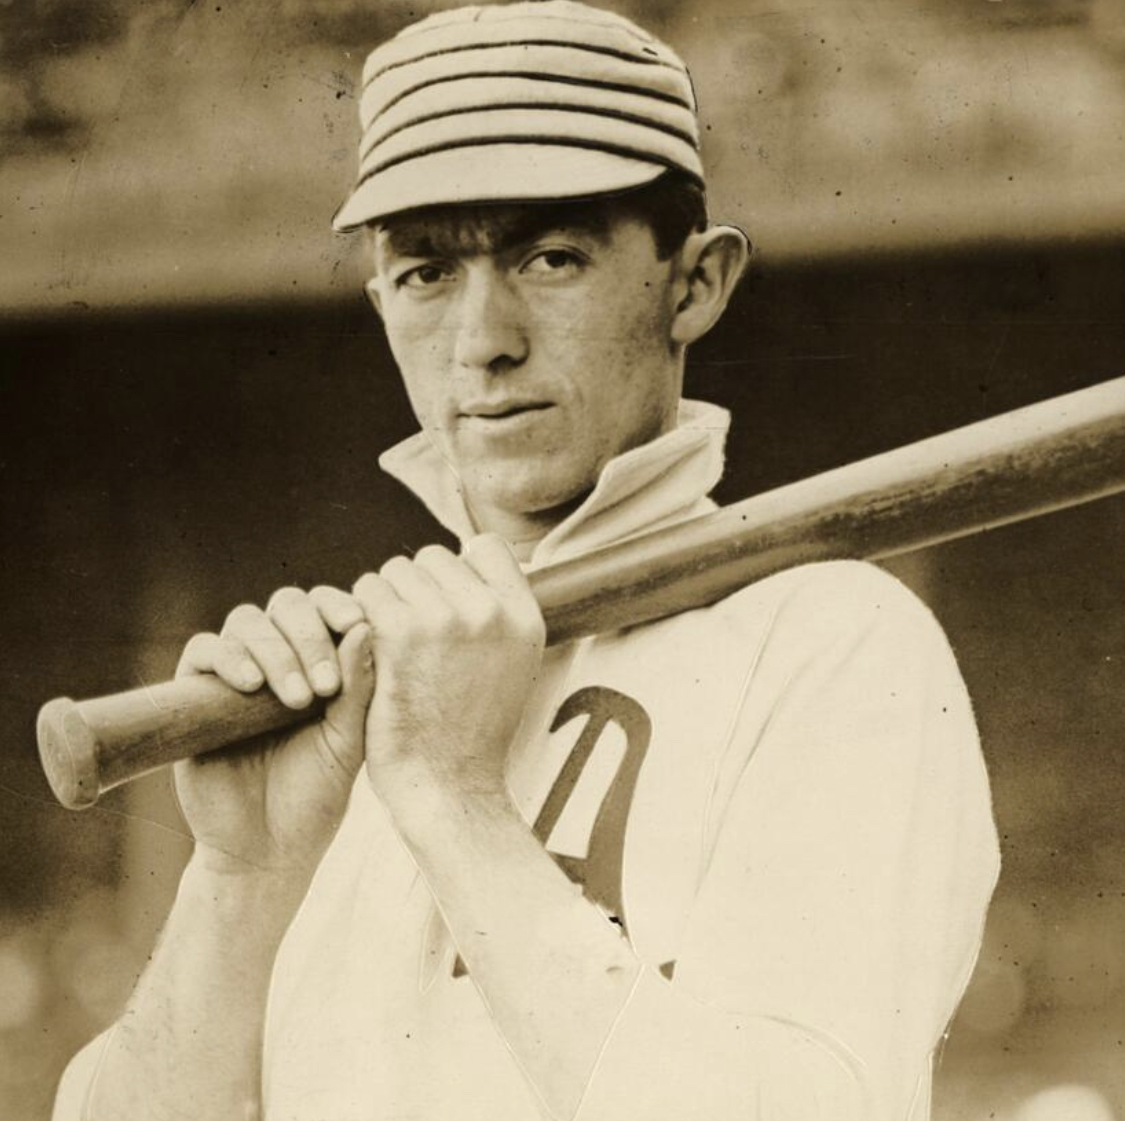 """""""I'd sure loved to have swung against today's lively ball. Yes, with my 52-ounce bat. . . . Many hitters are swinging for the fences instead of choking up. Of course, homers are nice. But I'll take a good .300 hitter who can get on base often. You can't drive in many runs batting .225 no matter how many homers you hit."""" — Frank """"Home Run"""" Baker"""